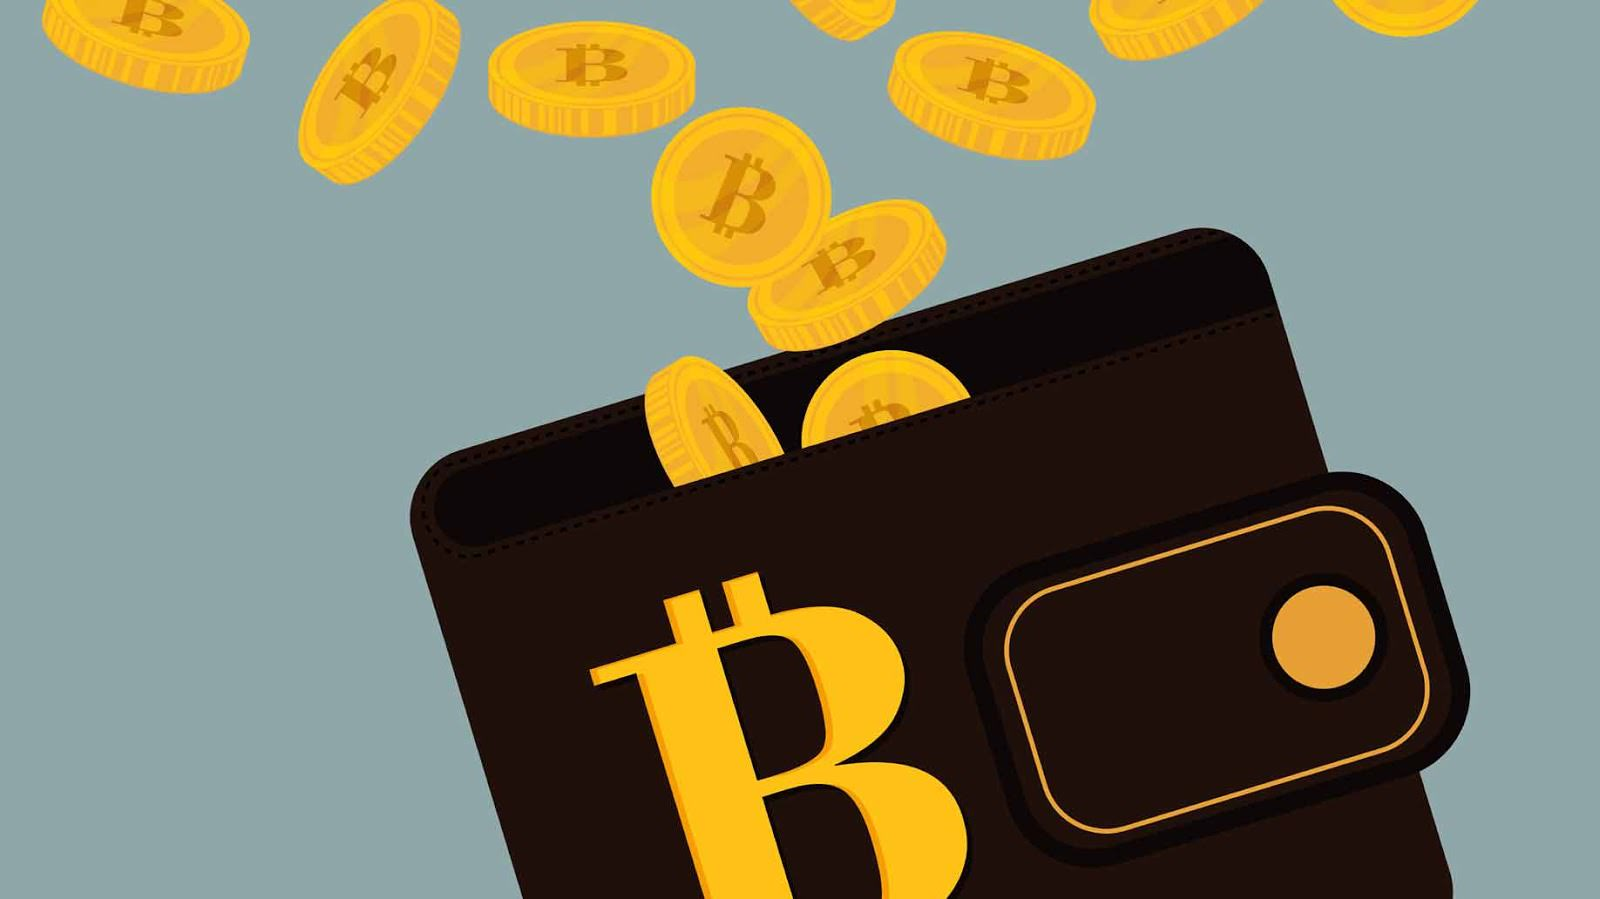 Bitcoin transaction fees lowered